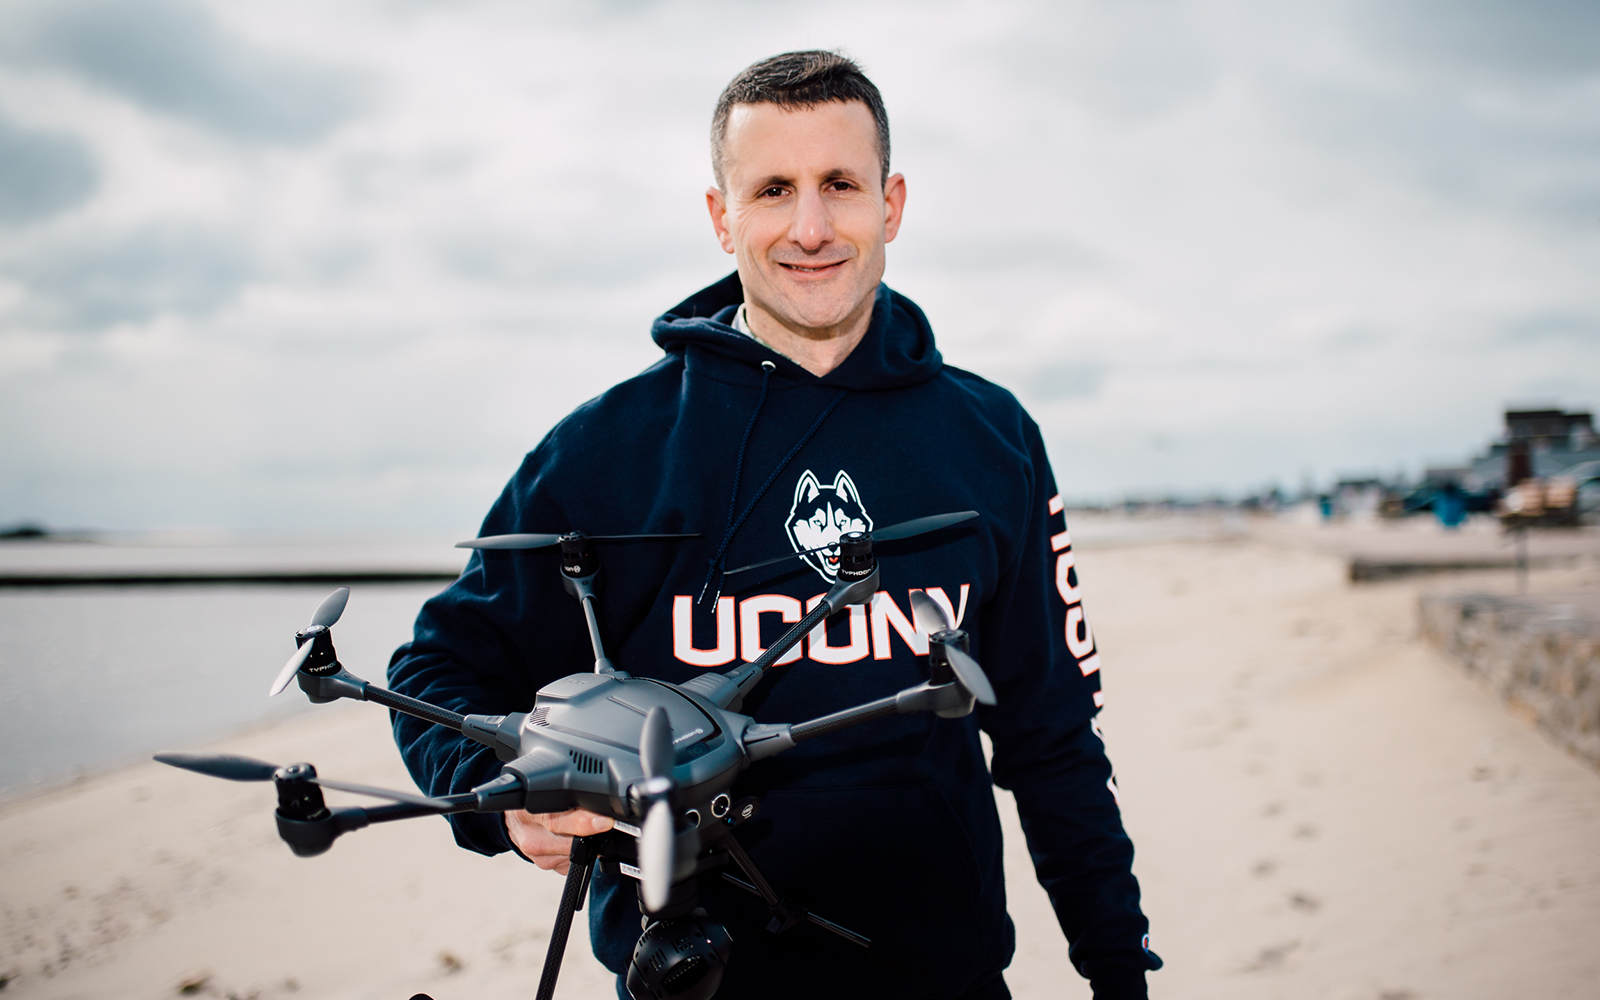 Jason Otrin poses on the beach with a drone in his hand.